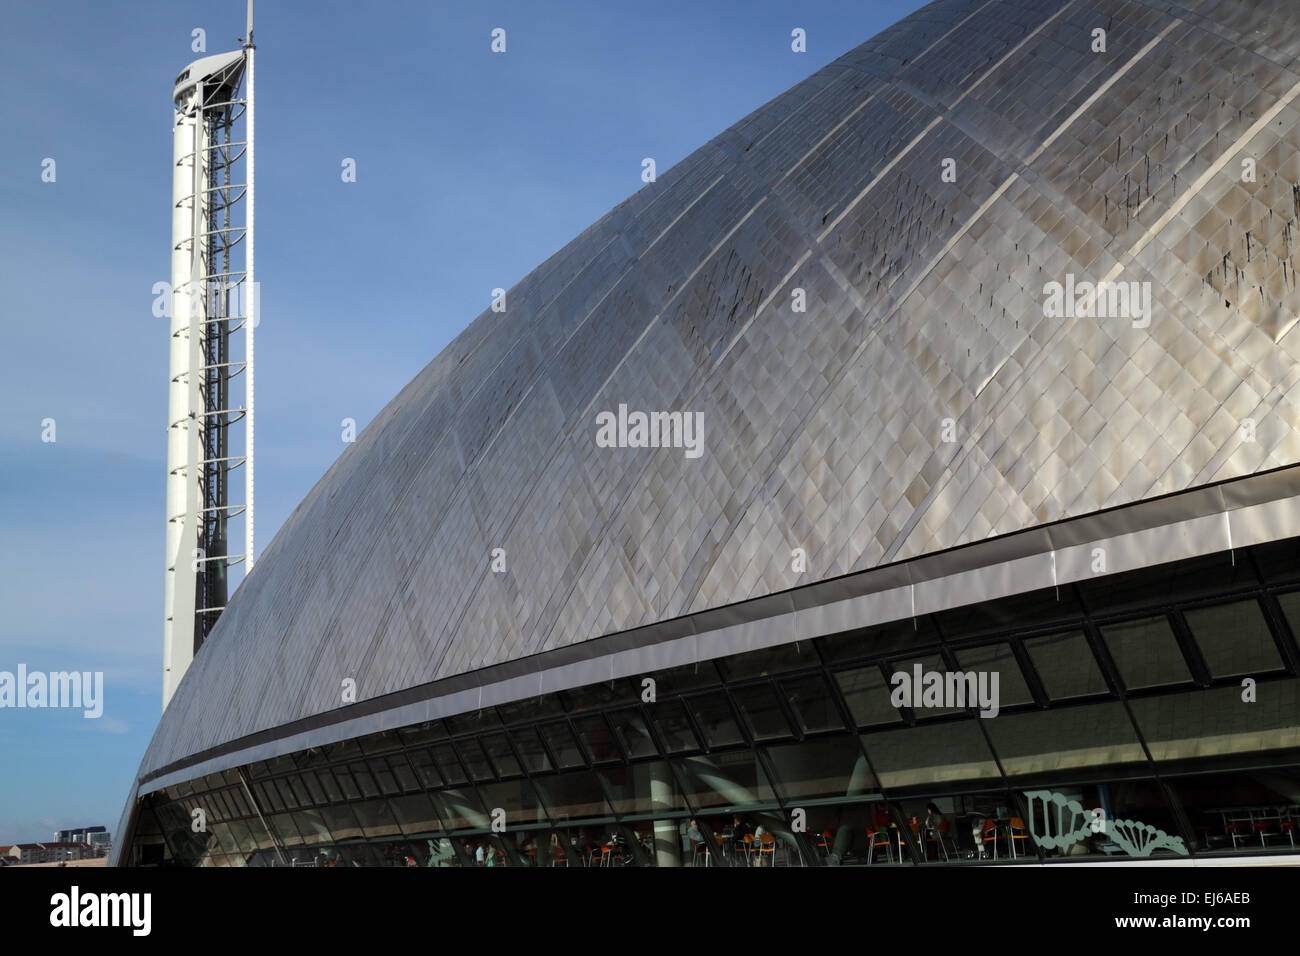 Glasgow science centre mall building and tower pacific quay Scotland uk - Stock Image